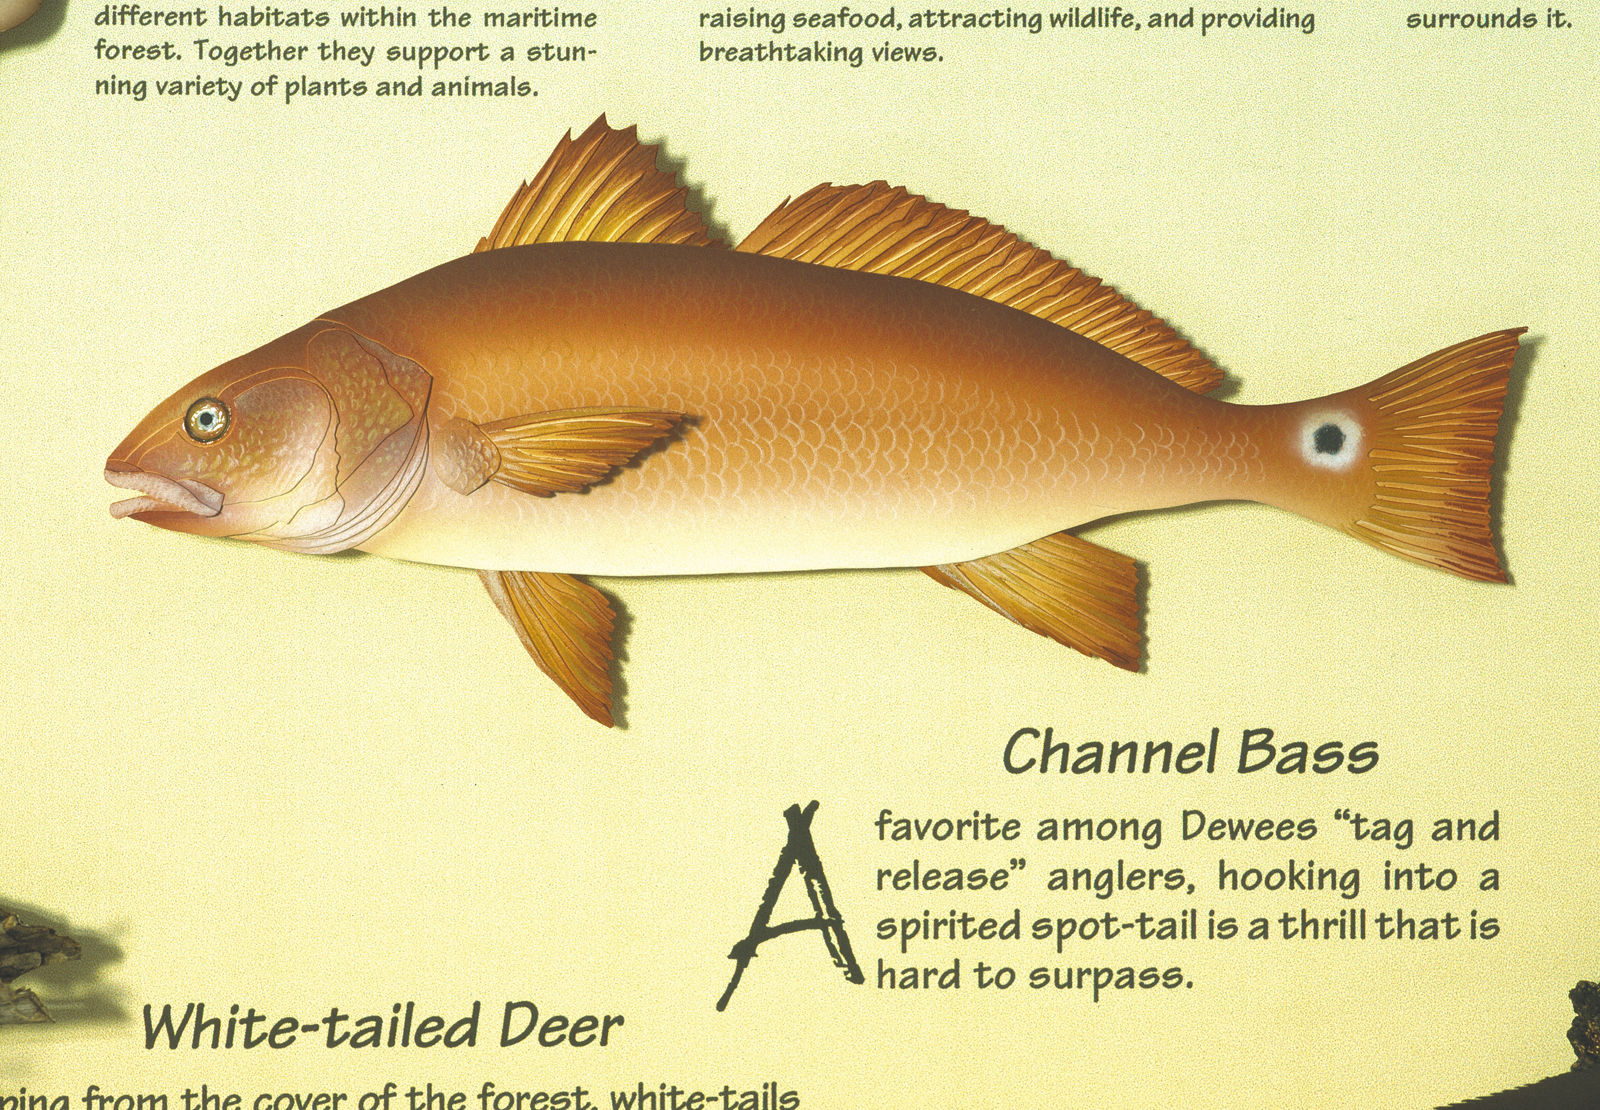 Dewees Channel Bass